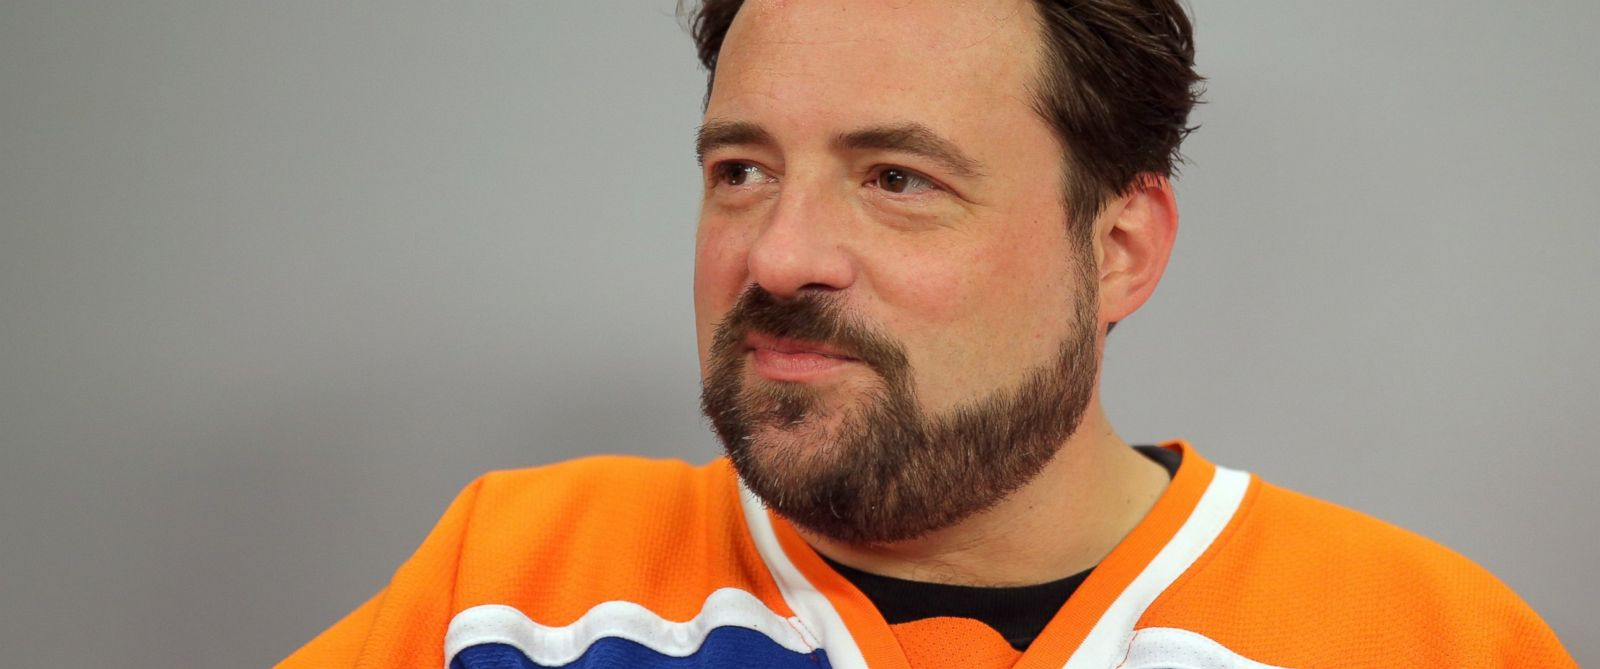 kevin smith facebook